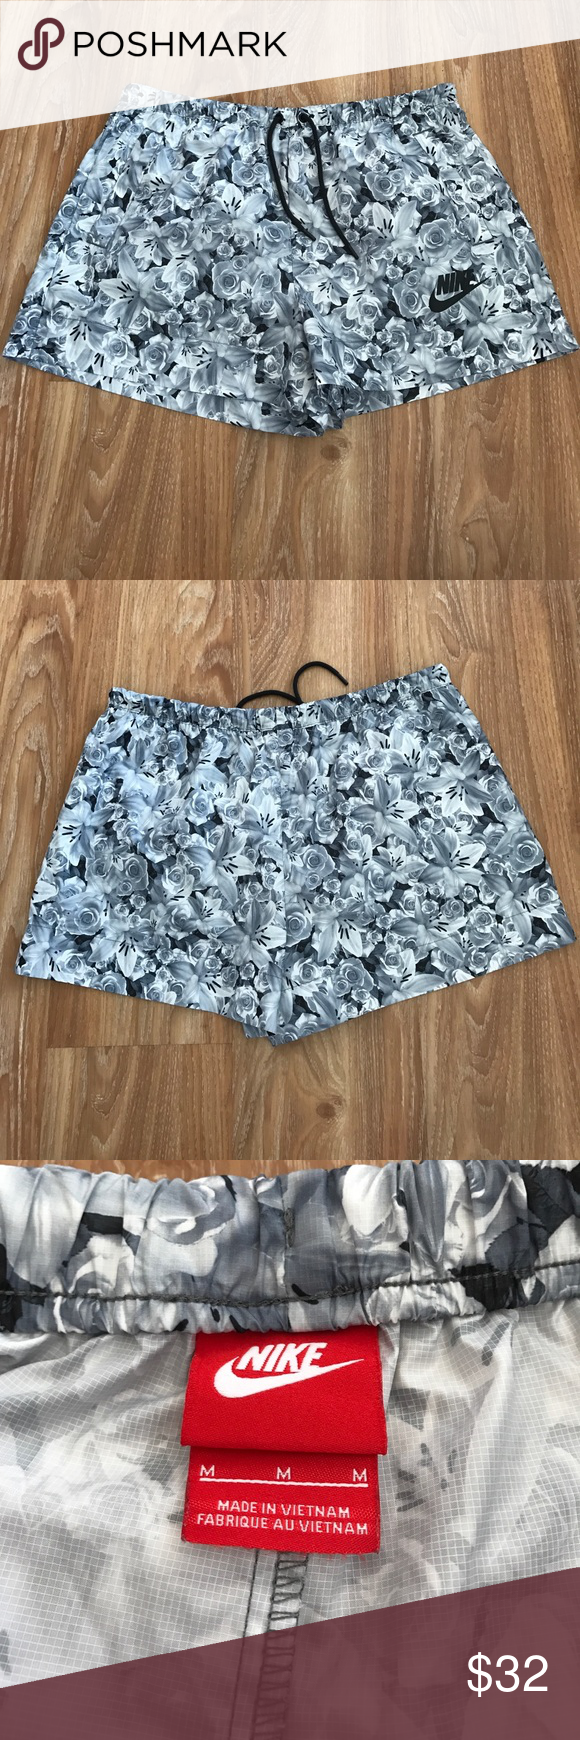 All Over Floral Print Casual Nike Shorts Euc All Over Gray Floral